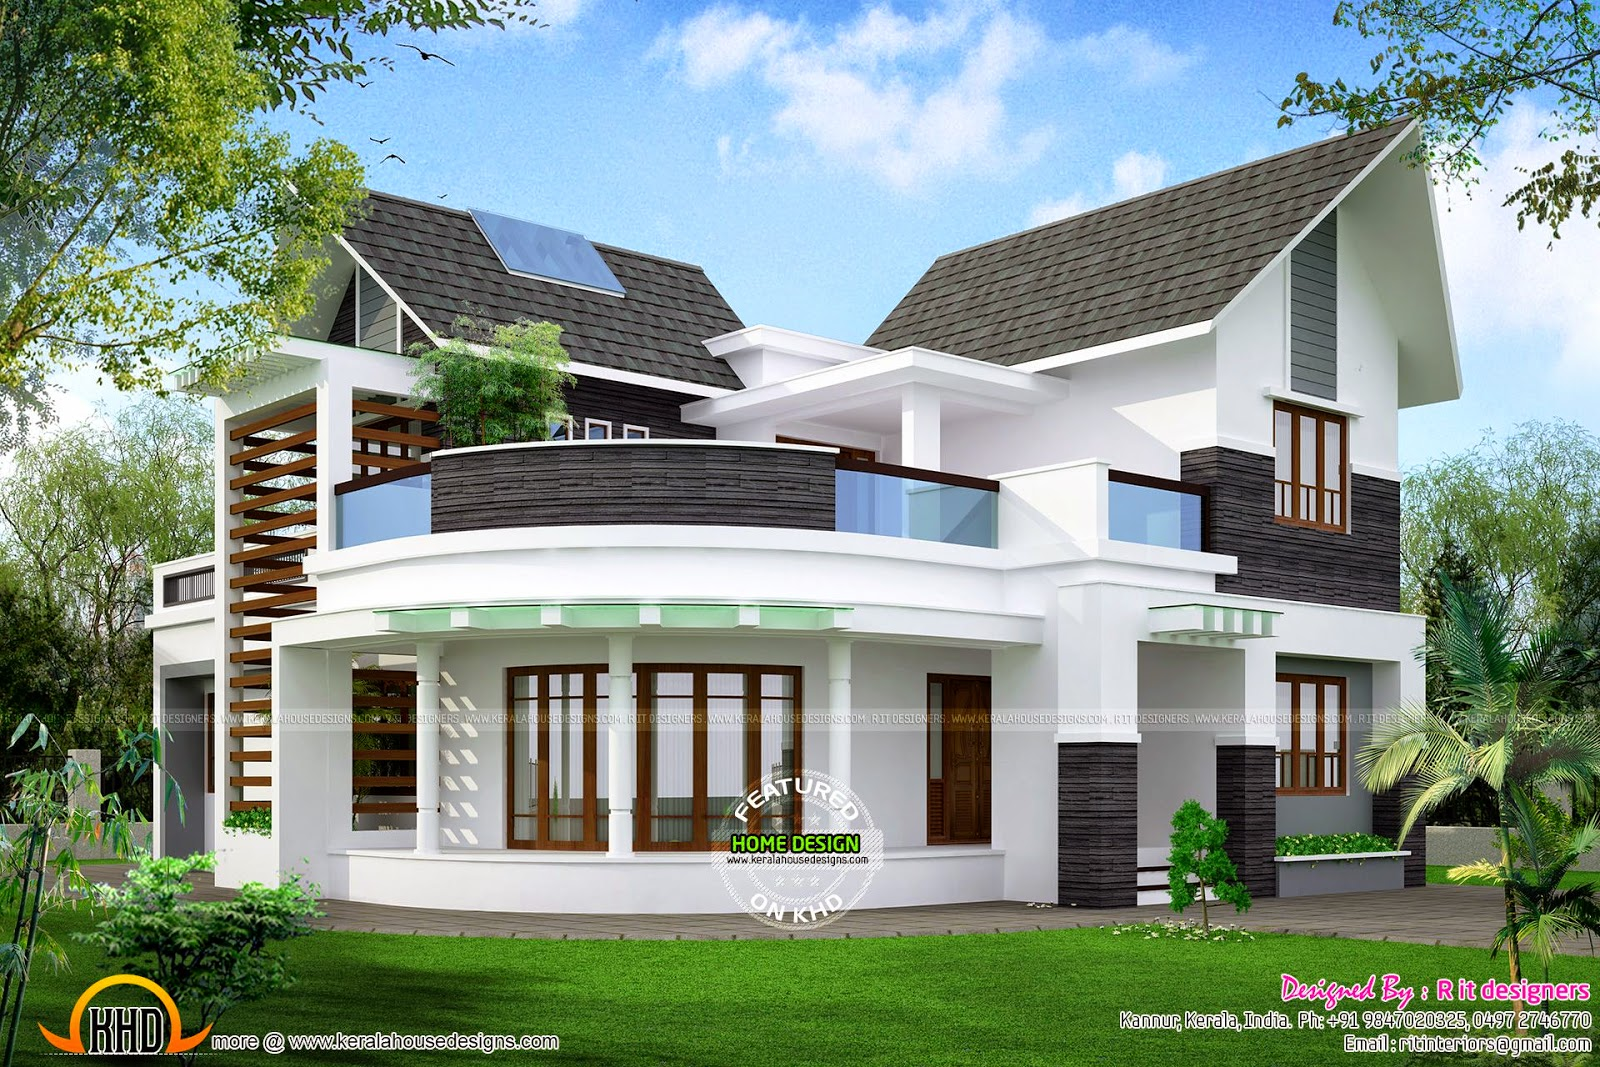 Glamorous modern unique house plans ideas ideas house for Cool modern house ideas